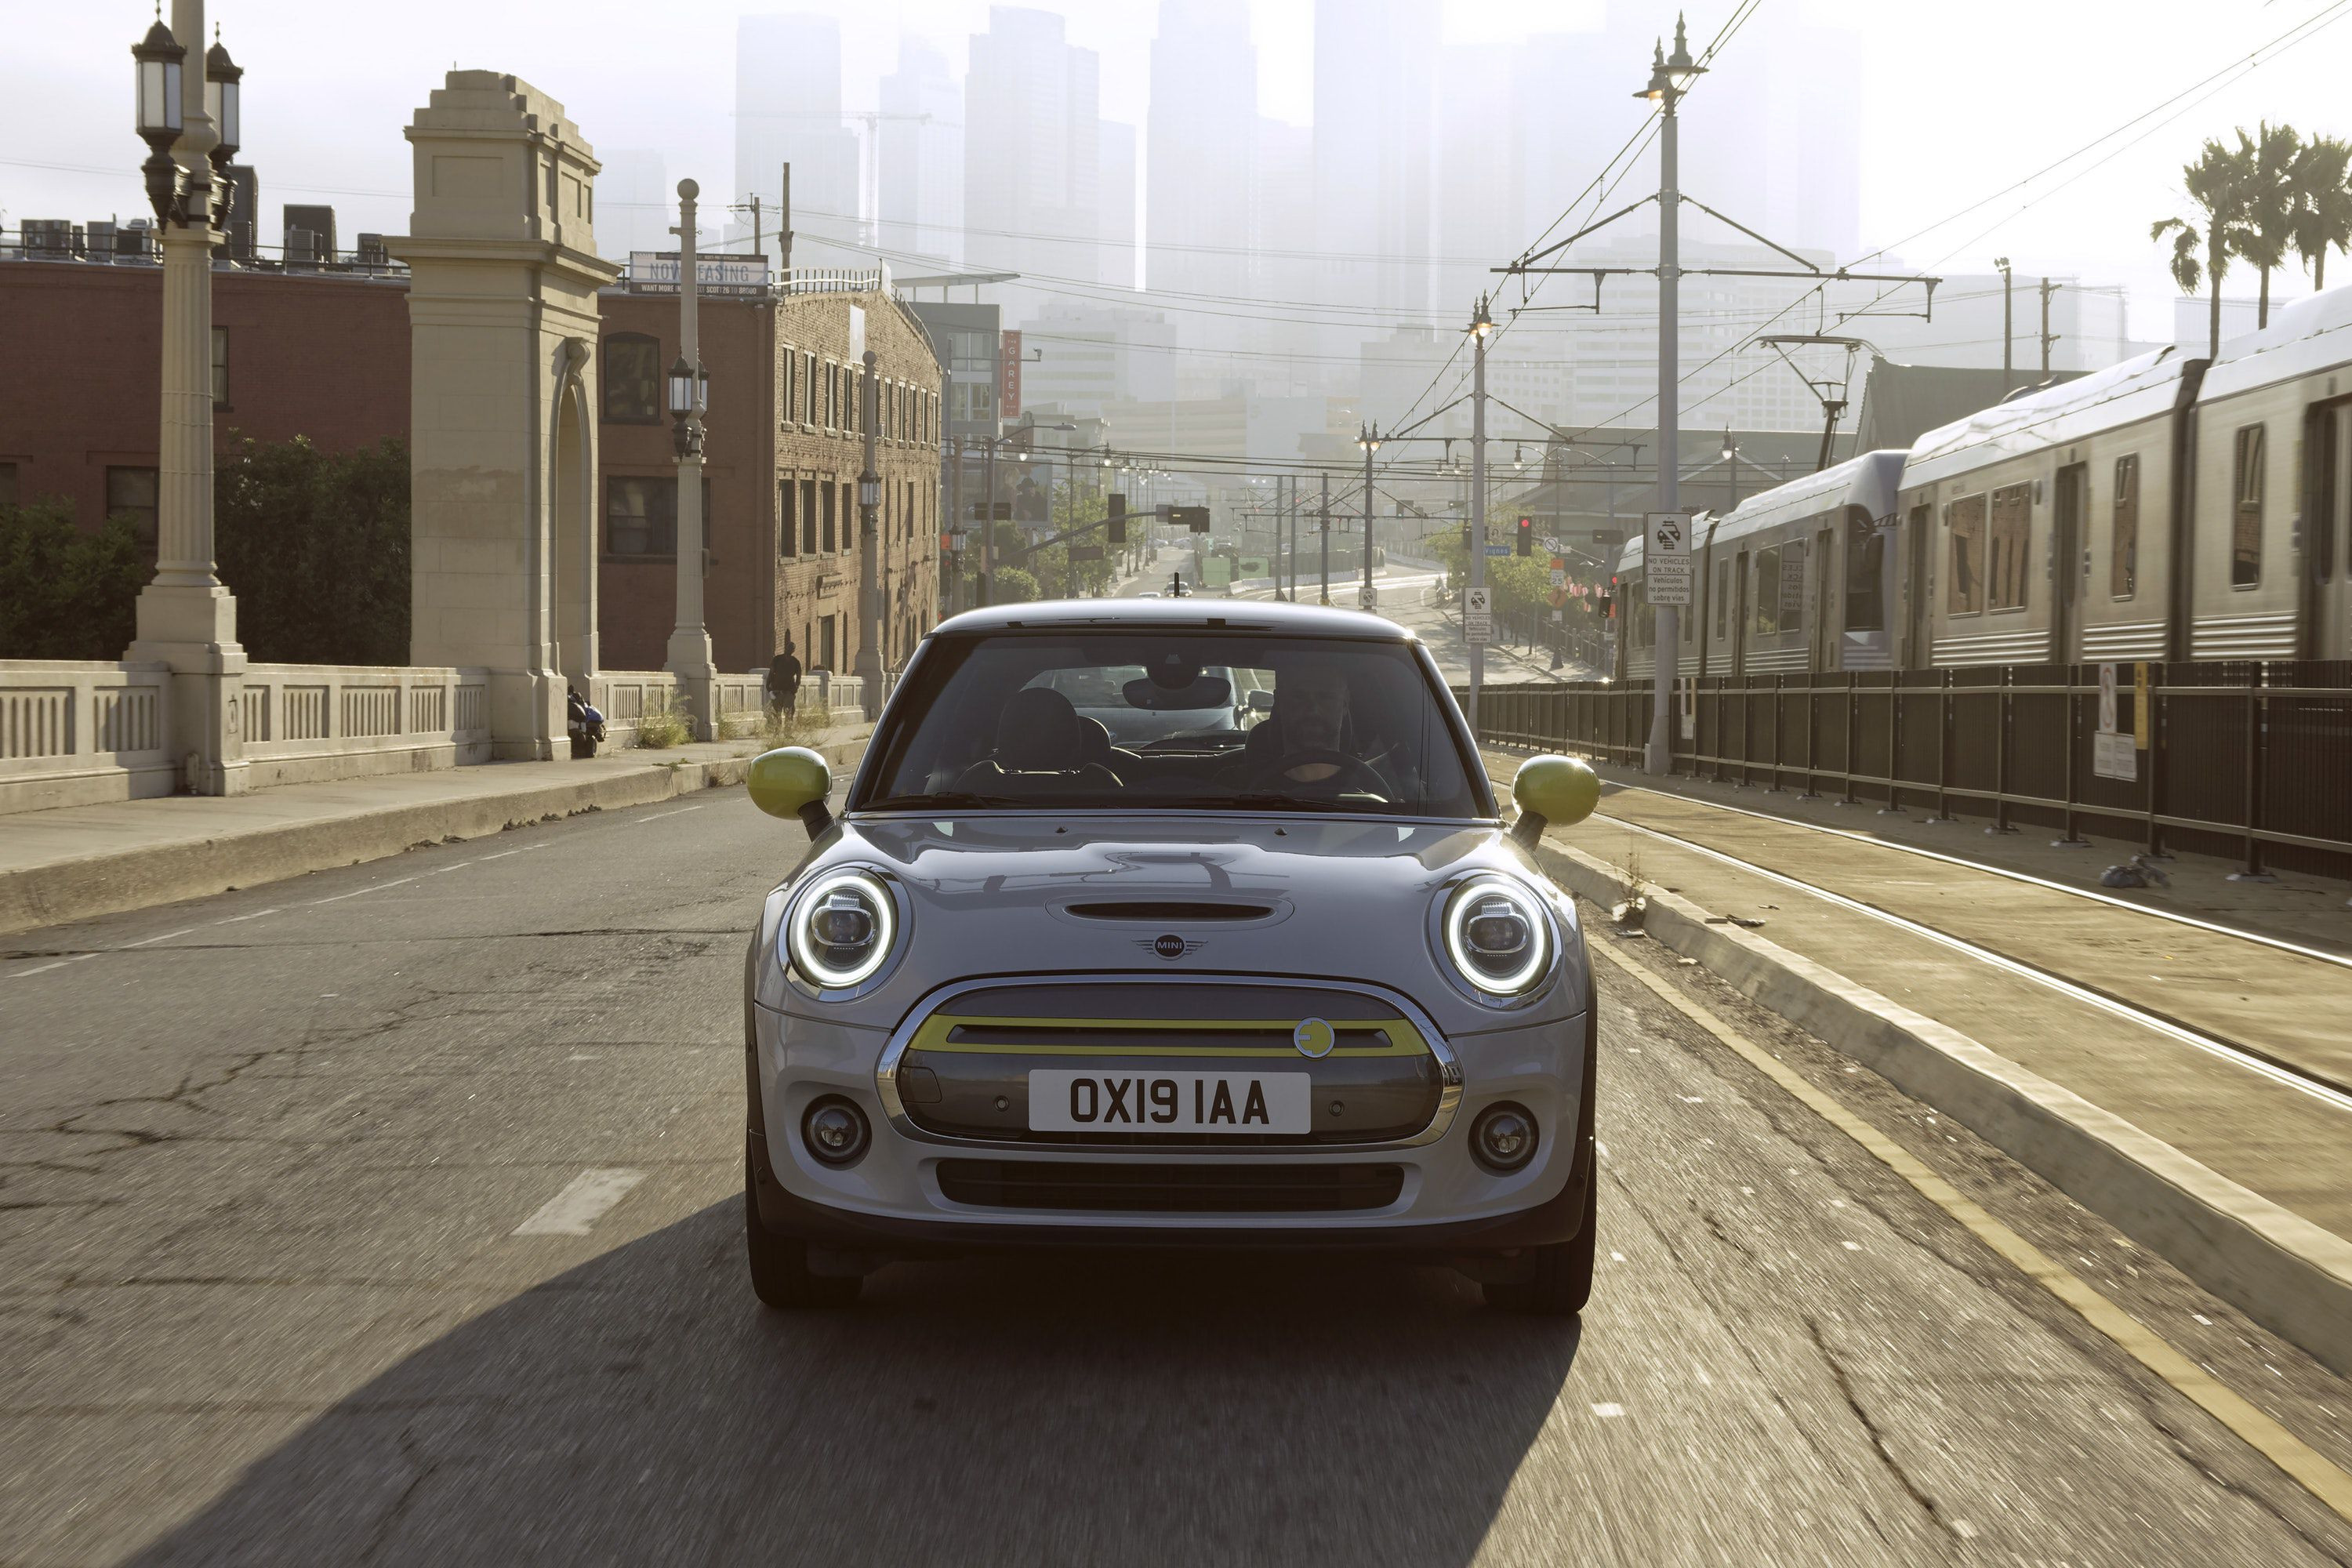 Front view of a Mini driving on a road